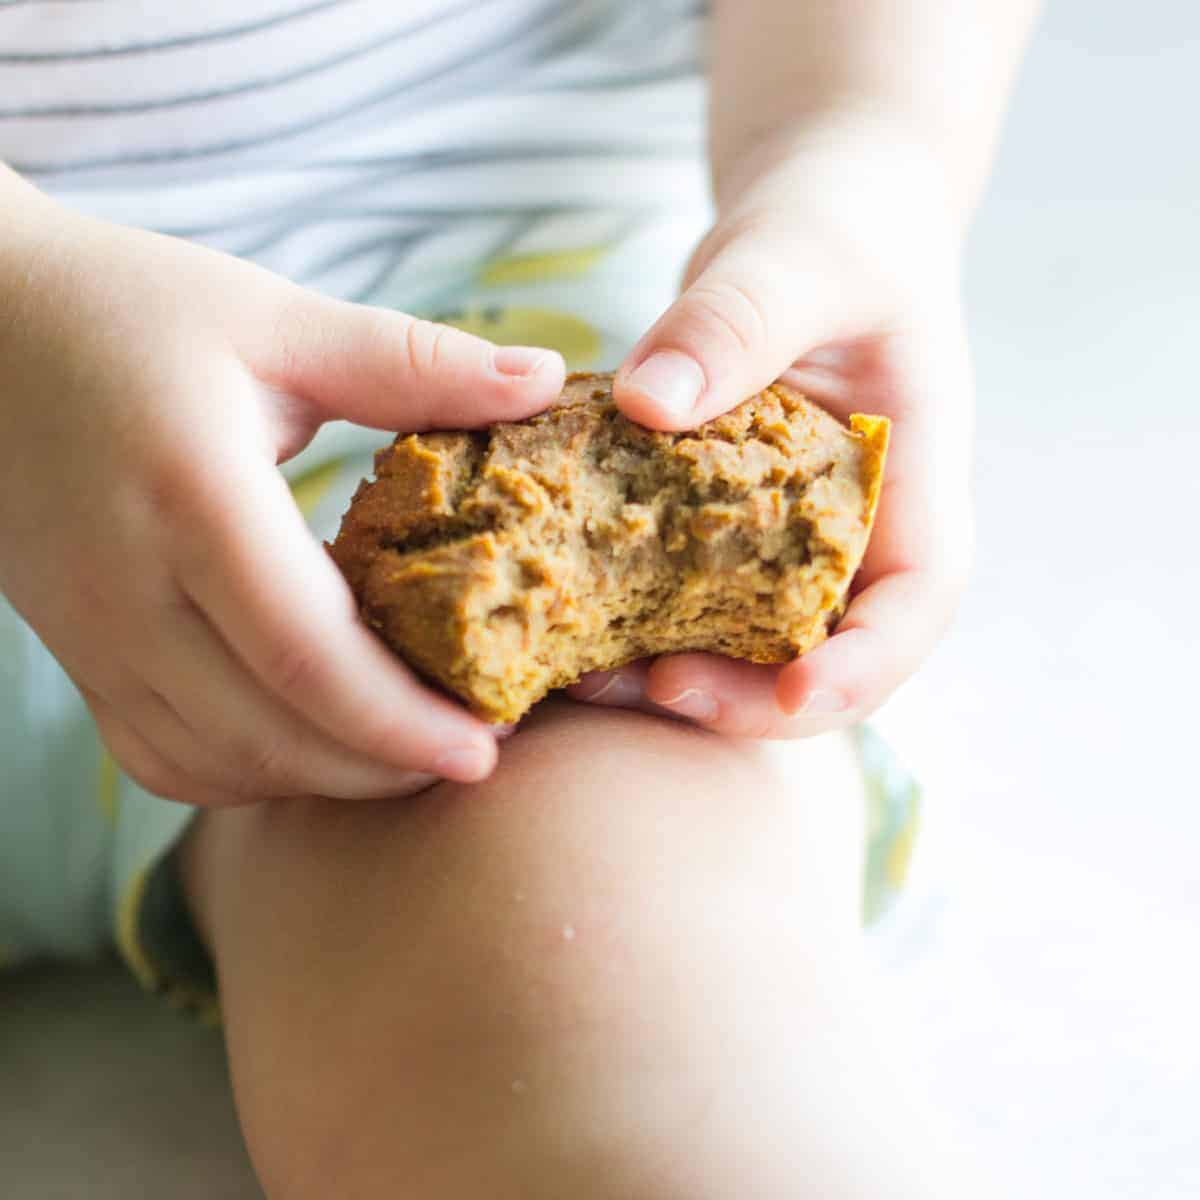 a toddler's hand holding a half eaten muffin